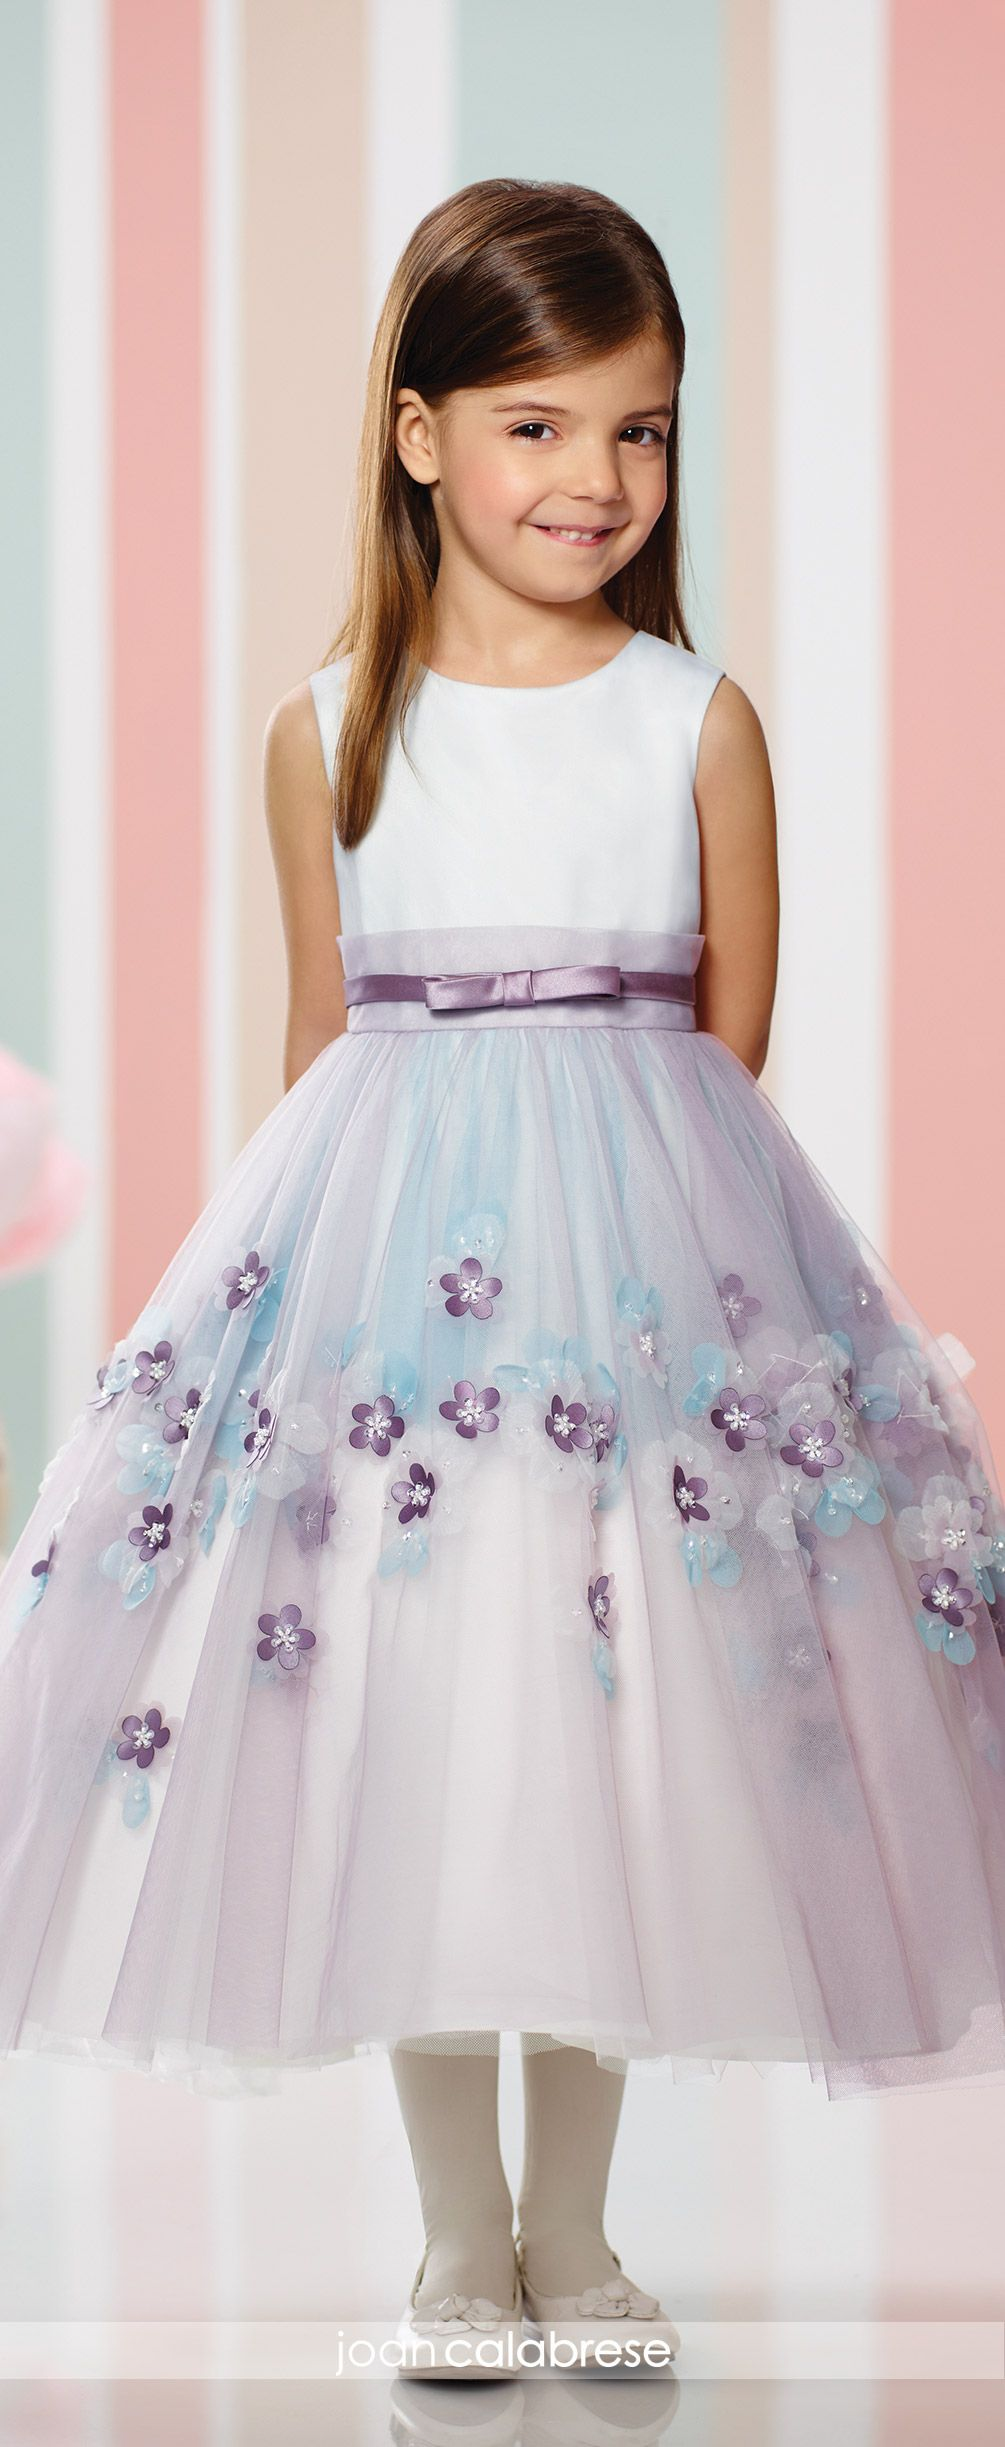 995ed7e72ad Joan Calabrese for Mon Cheri - Fall 2016 - Style No. 216310 - sleeveless  satin and tulle tea-length flower girl dress with organaza flowers - shown  in ...